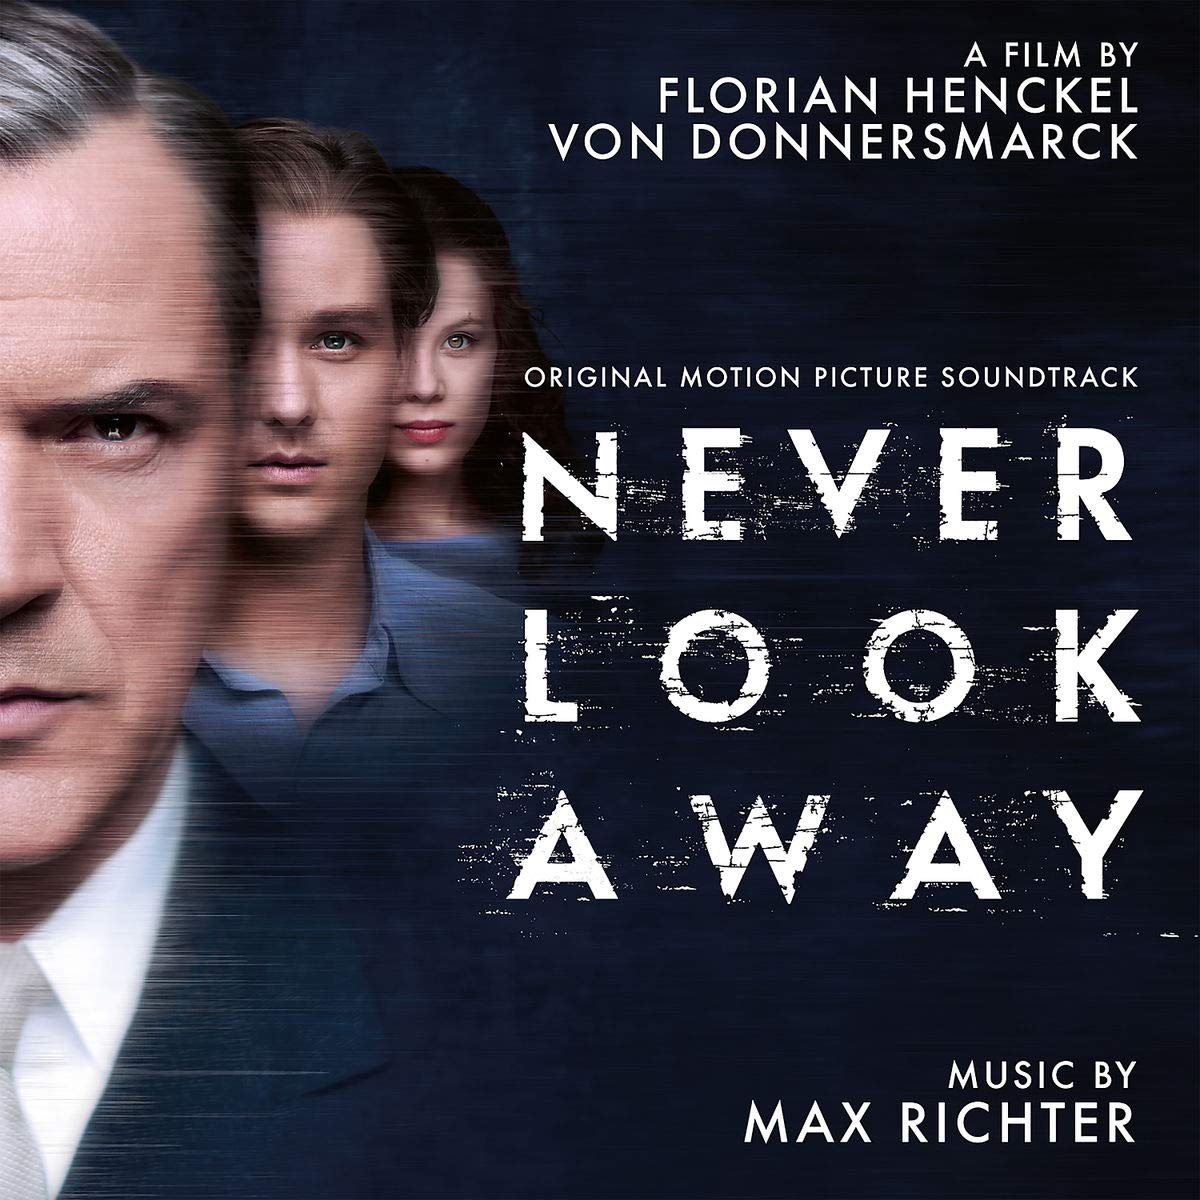 Never look away - Opera senza autore (2019)